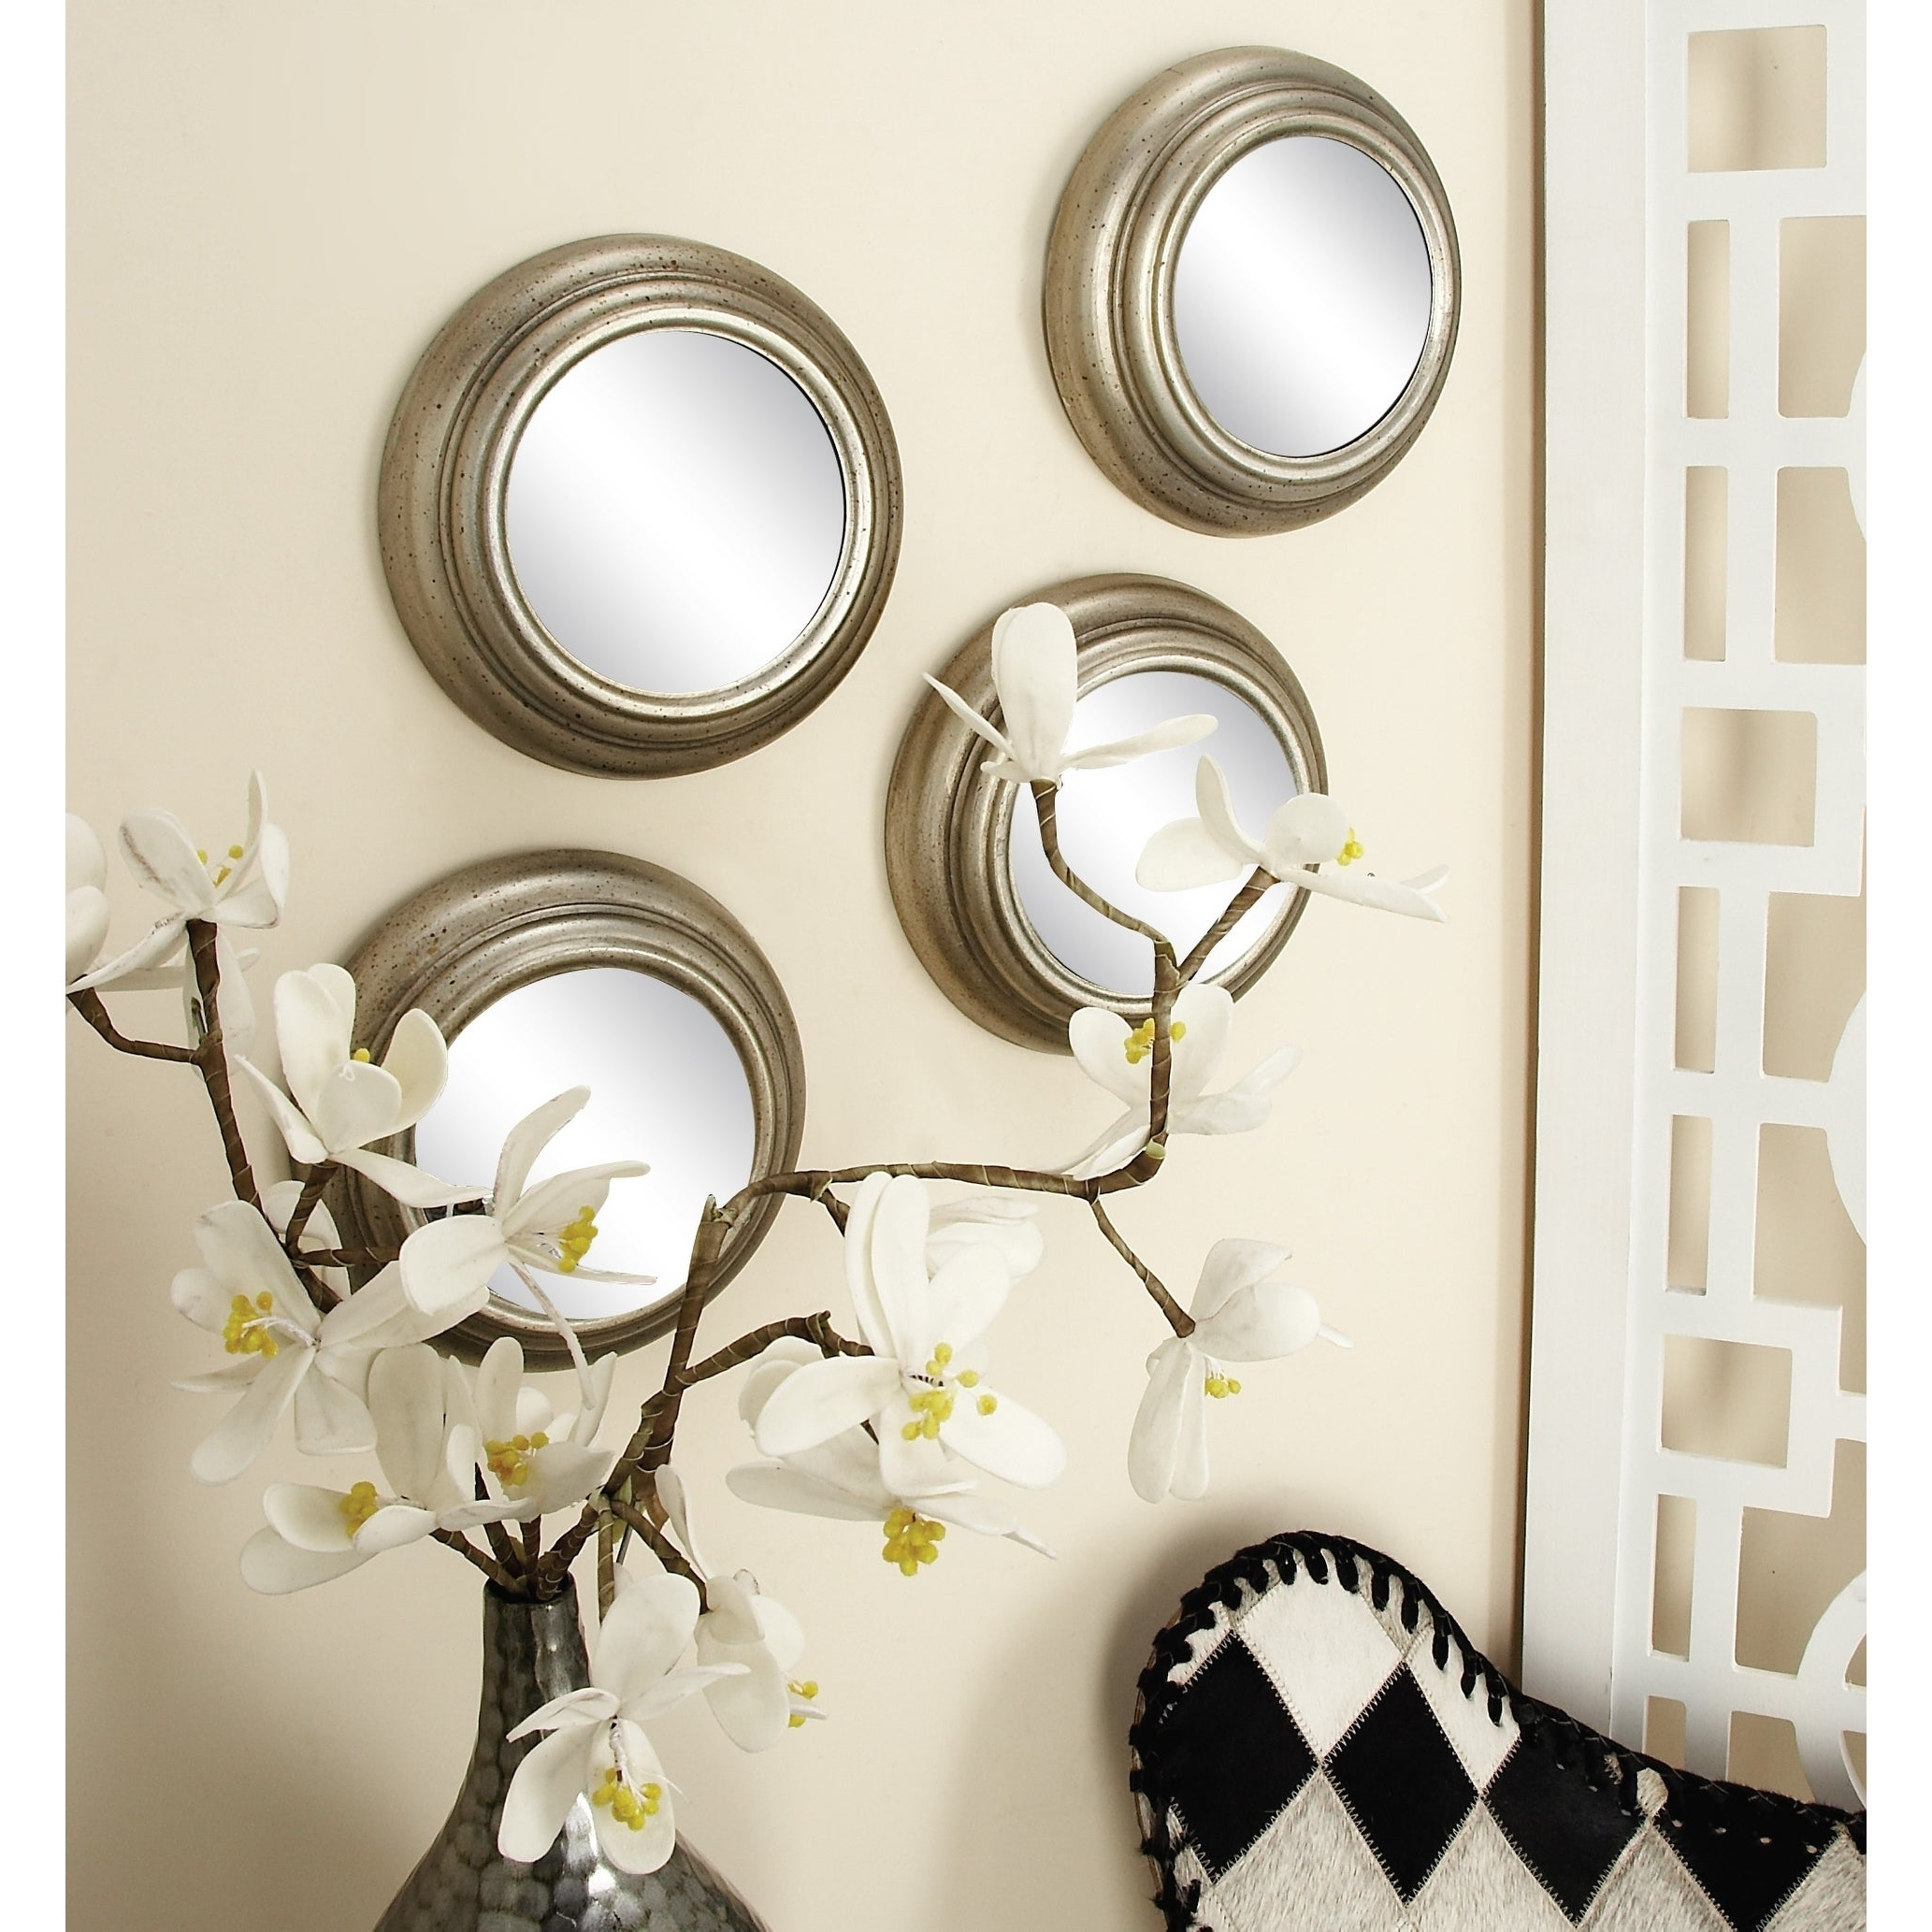 Best And Newest Set Of 12 Contemporary Round Decorative Wall Mirrorsstudio 350 – Silver With Decorative Round Wall Mirrors (View 7 of 20)